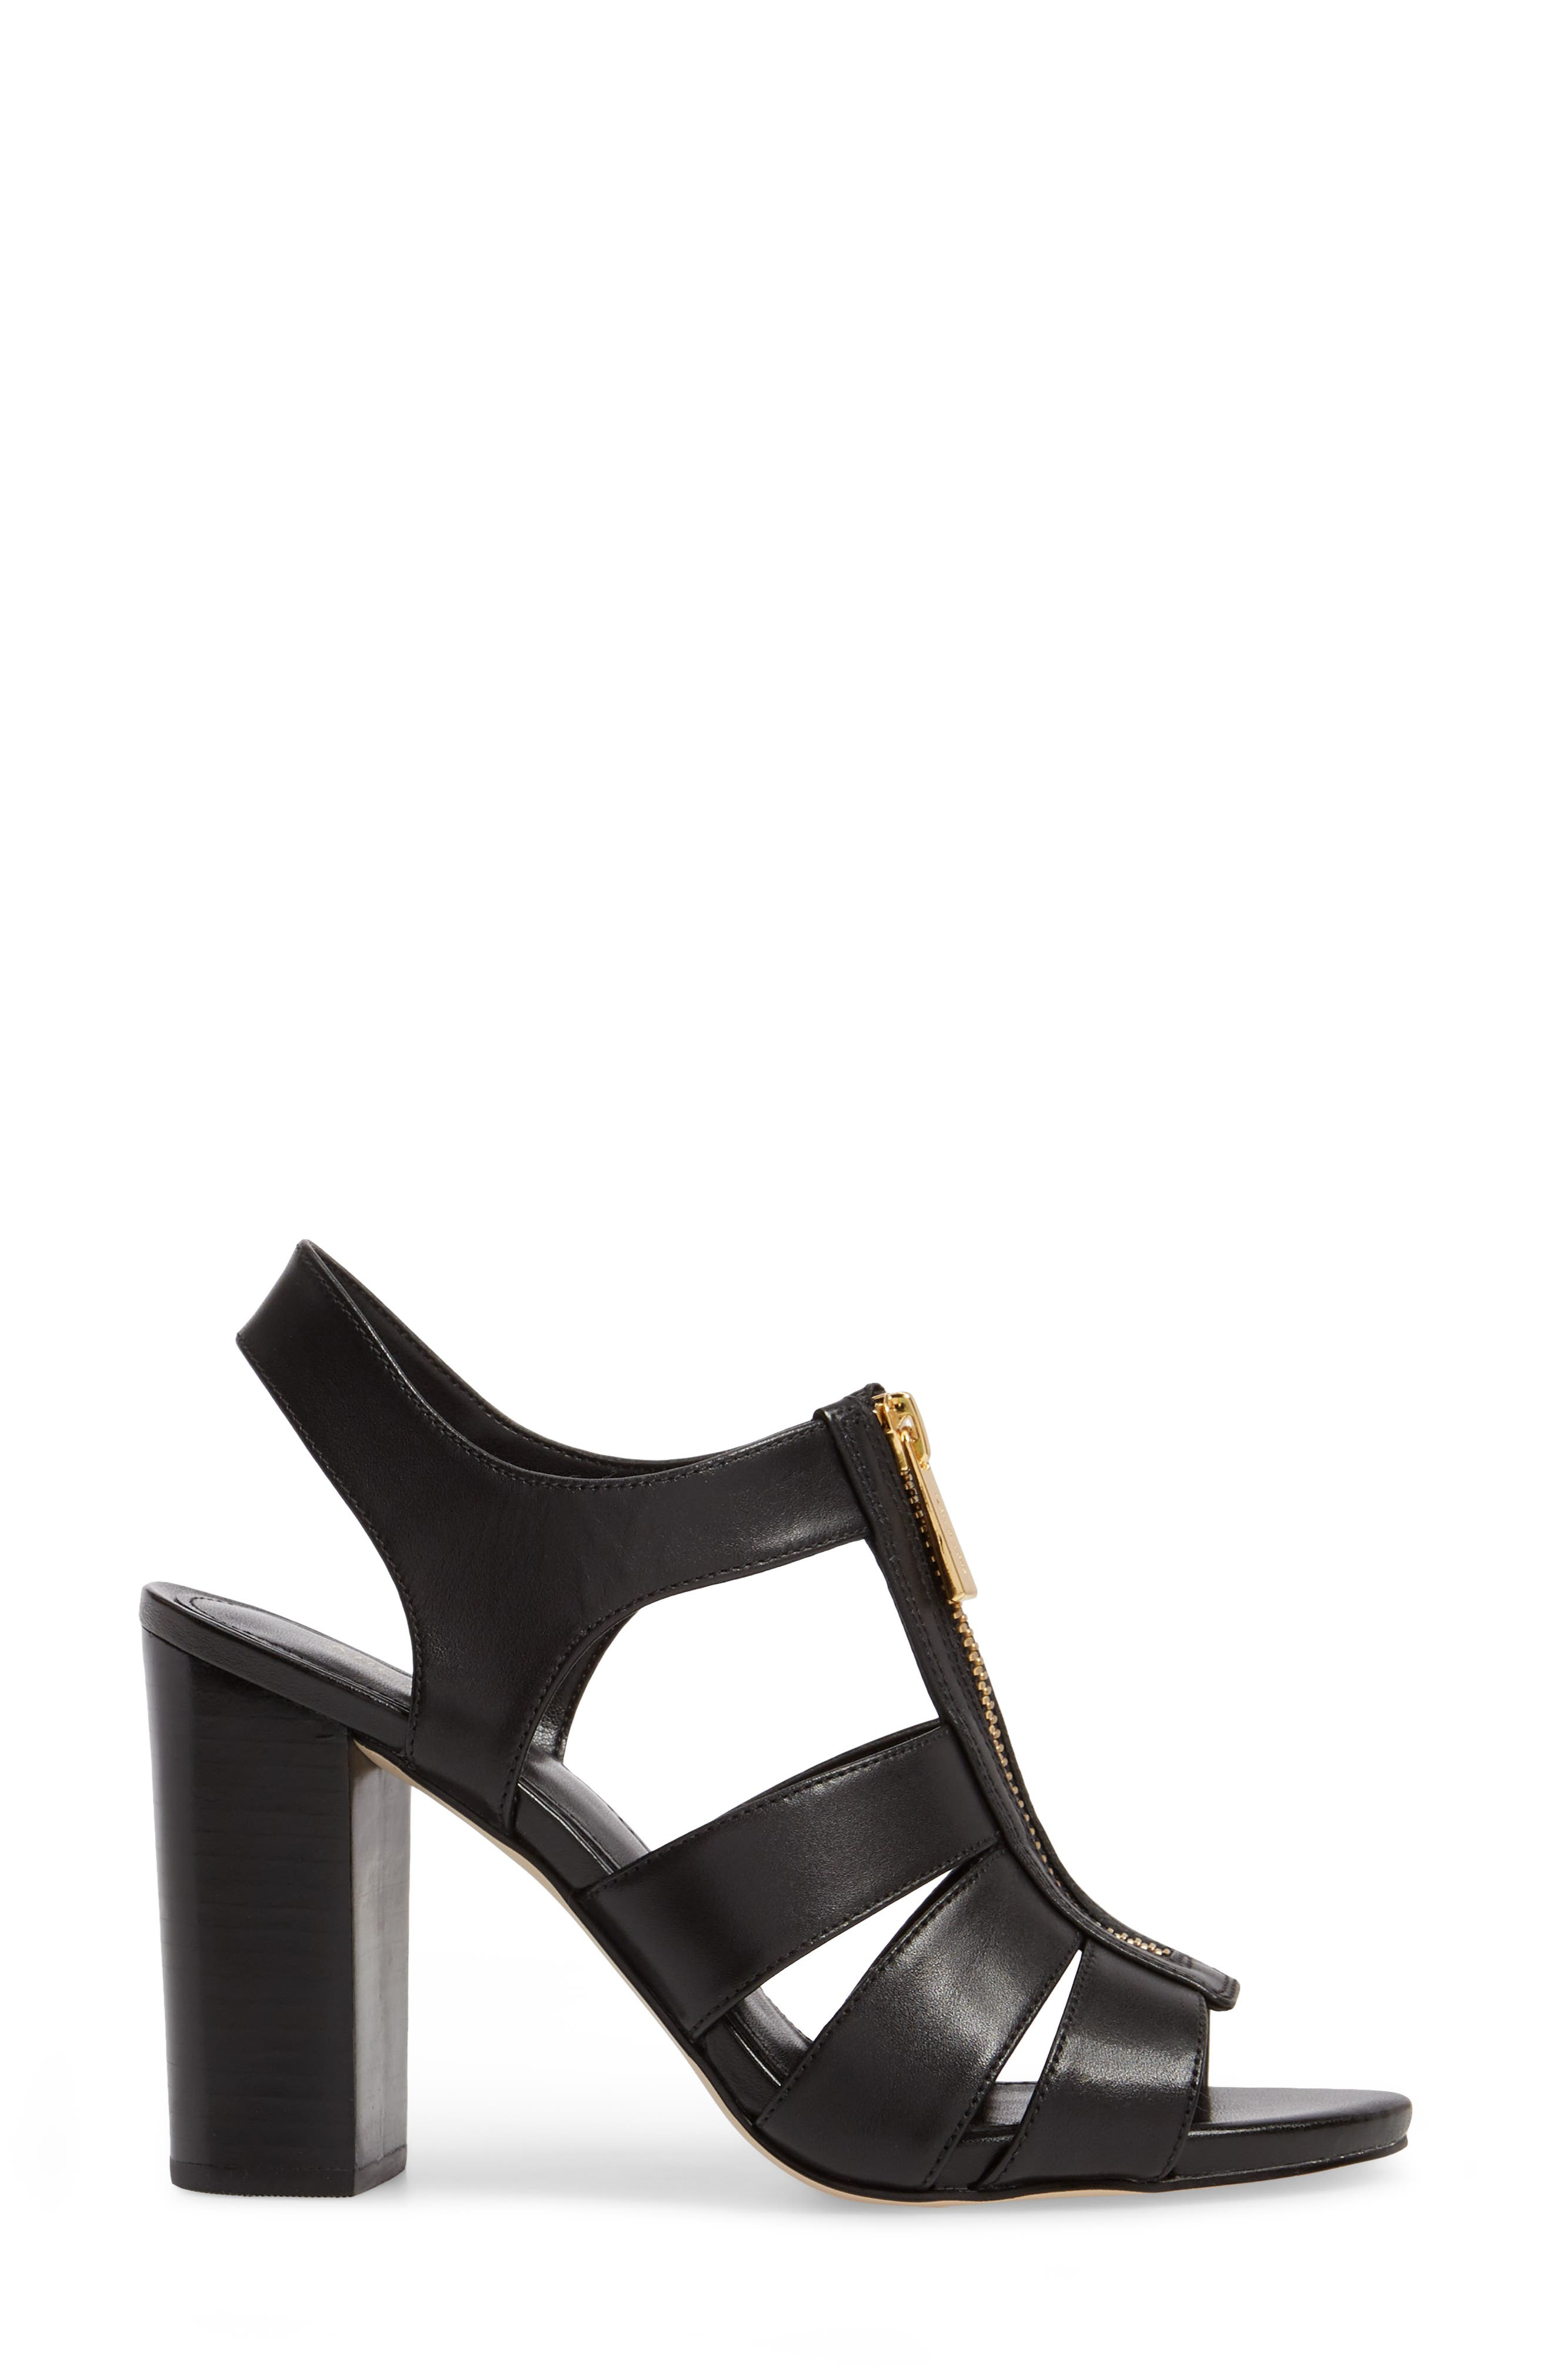 Damita Sandal,                             Alternate thumbnail 3, color,                             Black